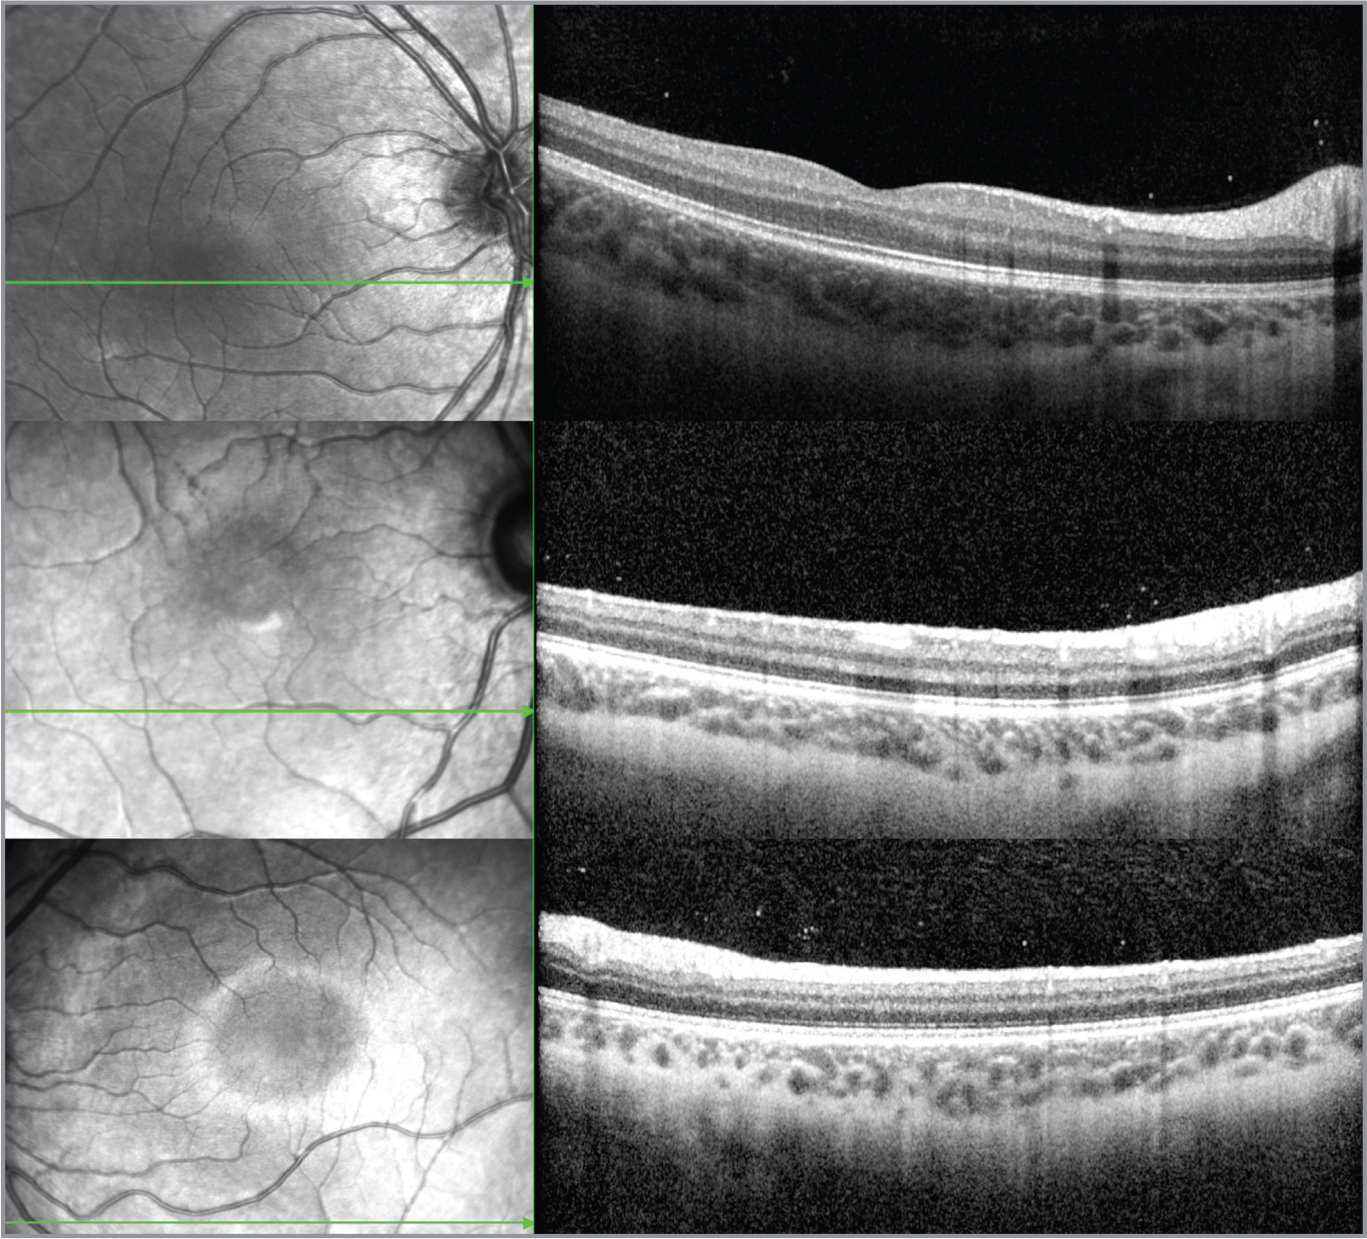 Three normal eyes of patients without vitreoretinal disease and normal findings on funduscopic exam demonstrate scattered hyperreflective vitreous opacities on optical coherence tomography. These images were captured with similar parameters: 30° X 25° 61-line high-speed volume scan with an axial resolution of 3.87 μm/pixel.